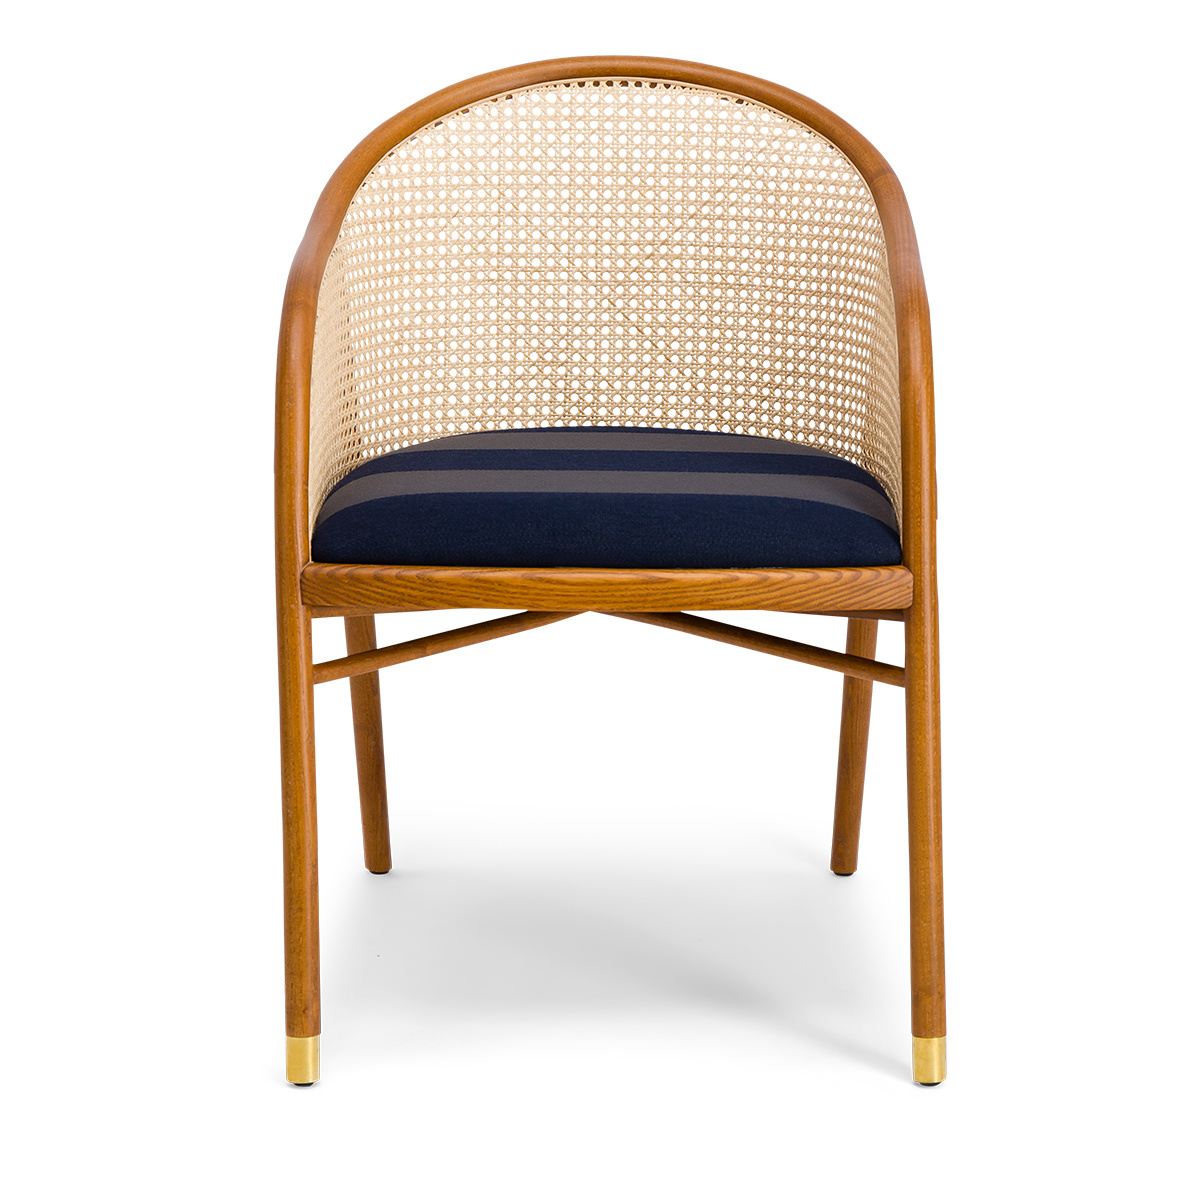 Cavallo Armchair, Kvadrat / Raf Simons Navy Blue Wool with Cherrywood Frame - Limited Edition